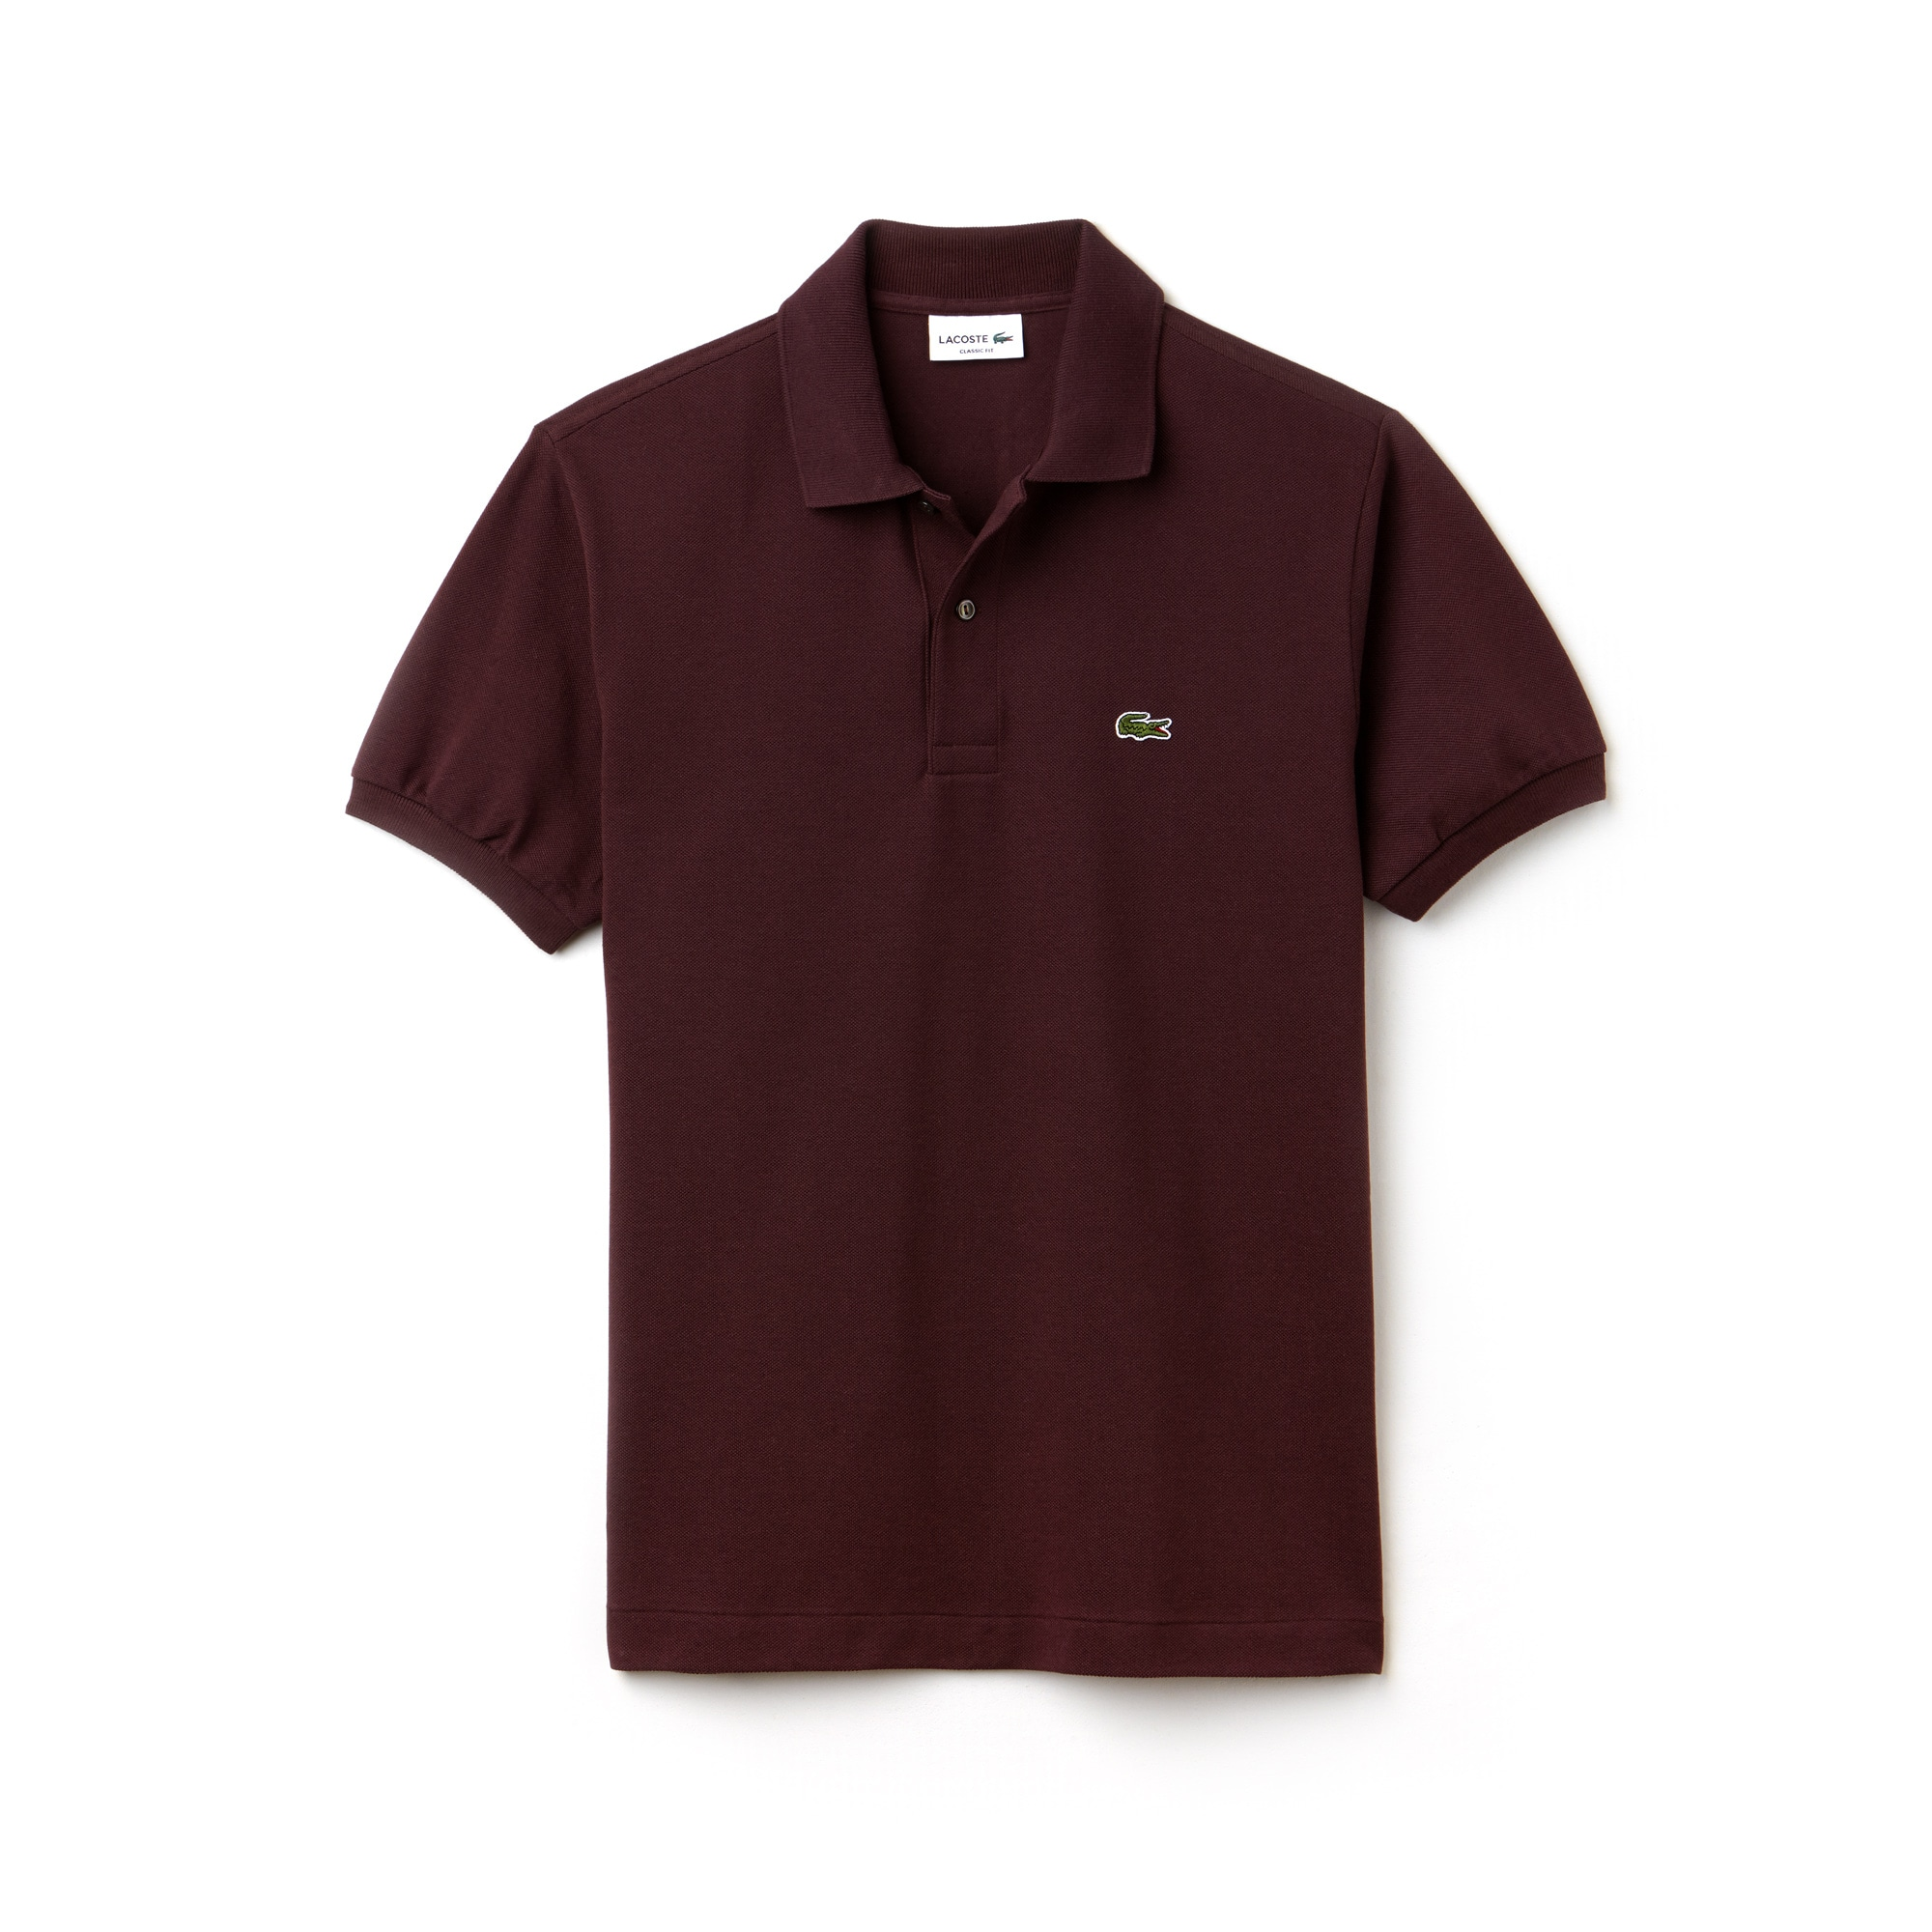 c8a360d965 Tous Polos Polo Lacoste Collection Les Tr7wqT